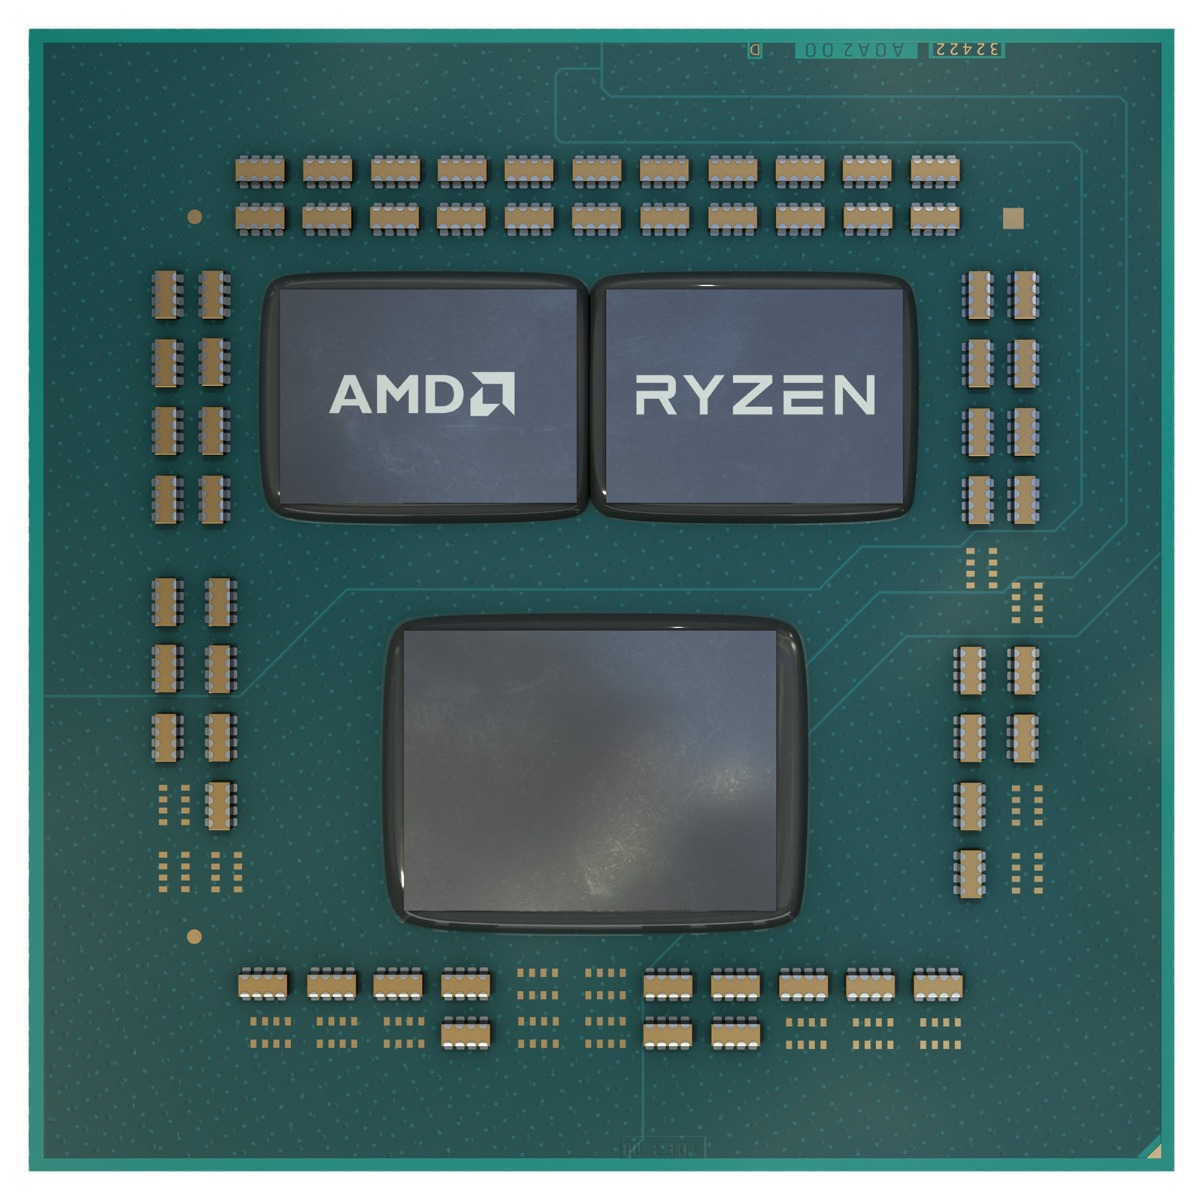 AMD Ryzen 9 3900X And Ryzen 7 3700X Review: Zen 2 Impresses